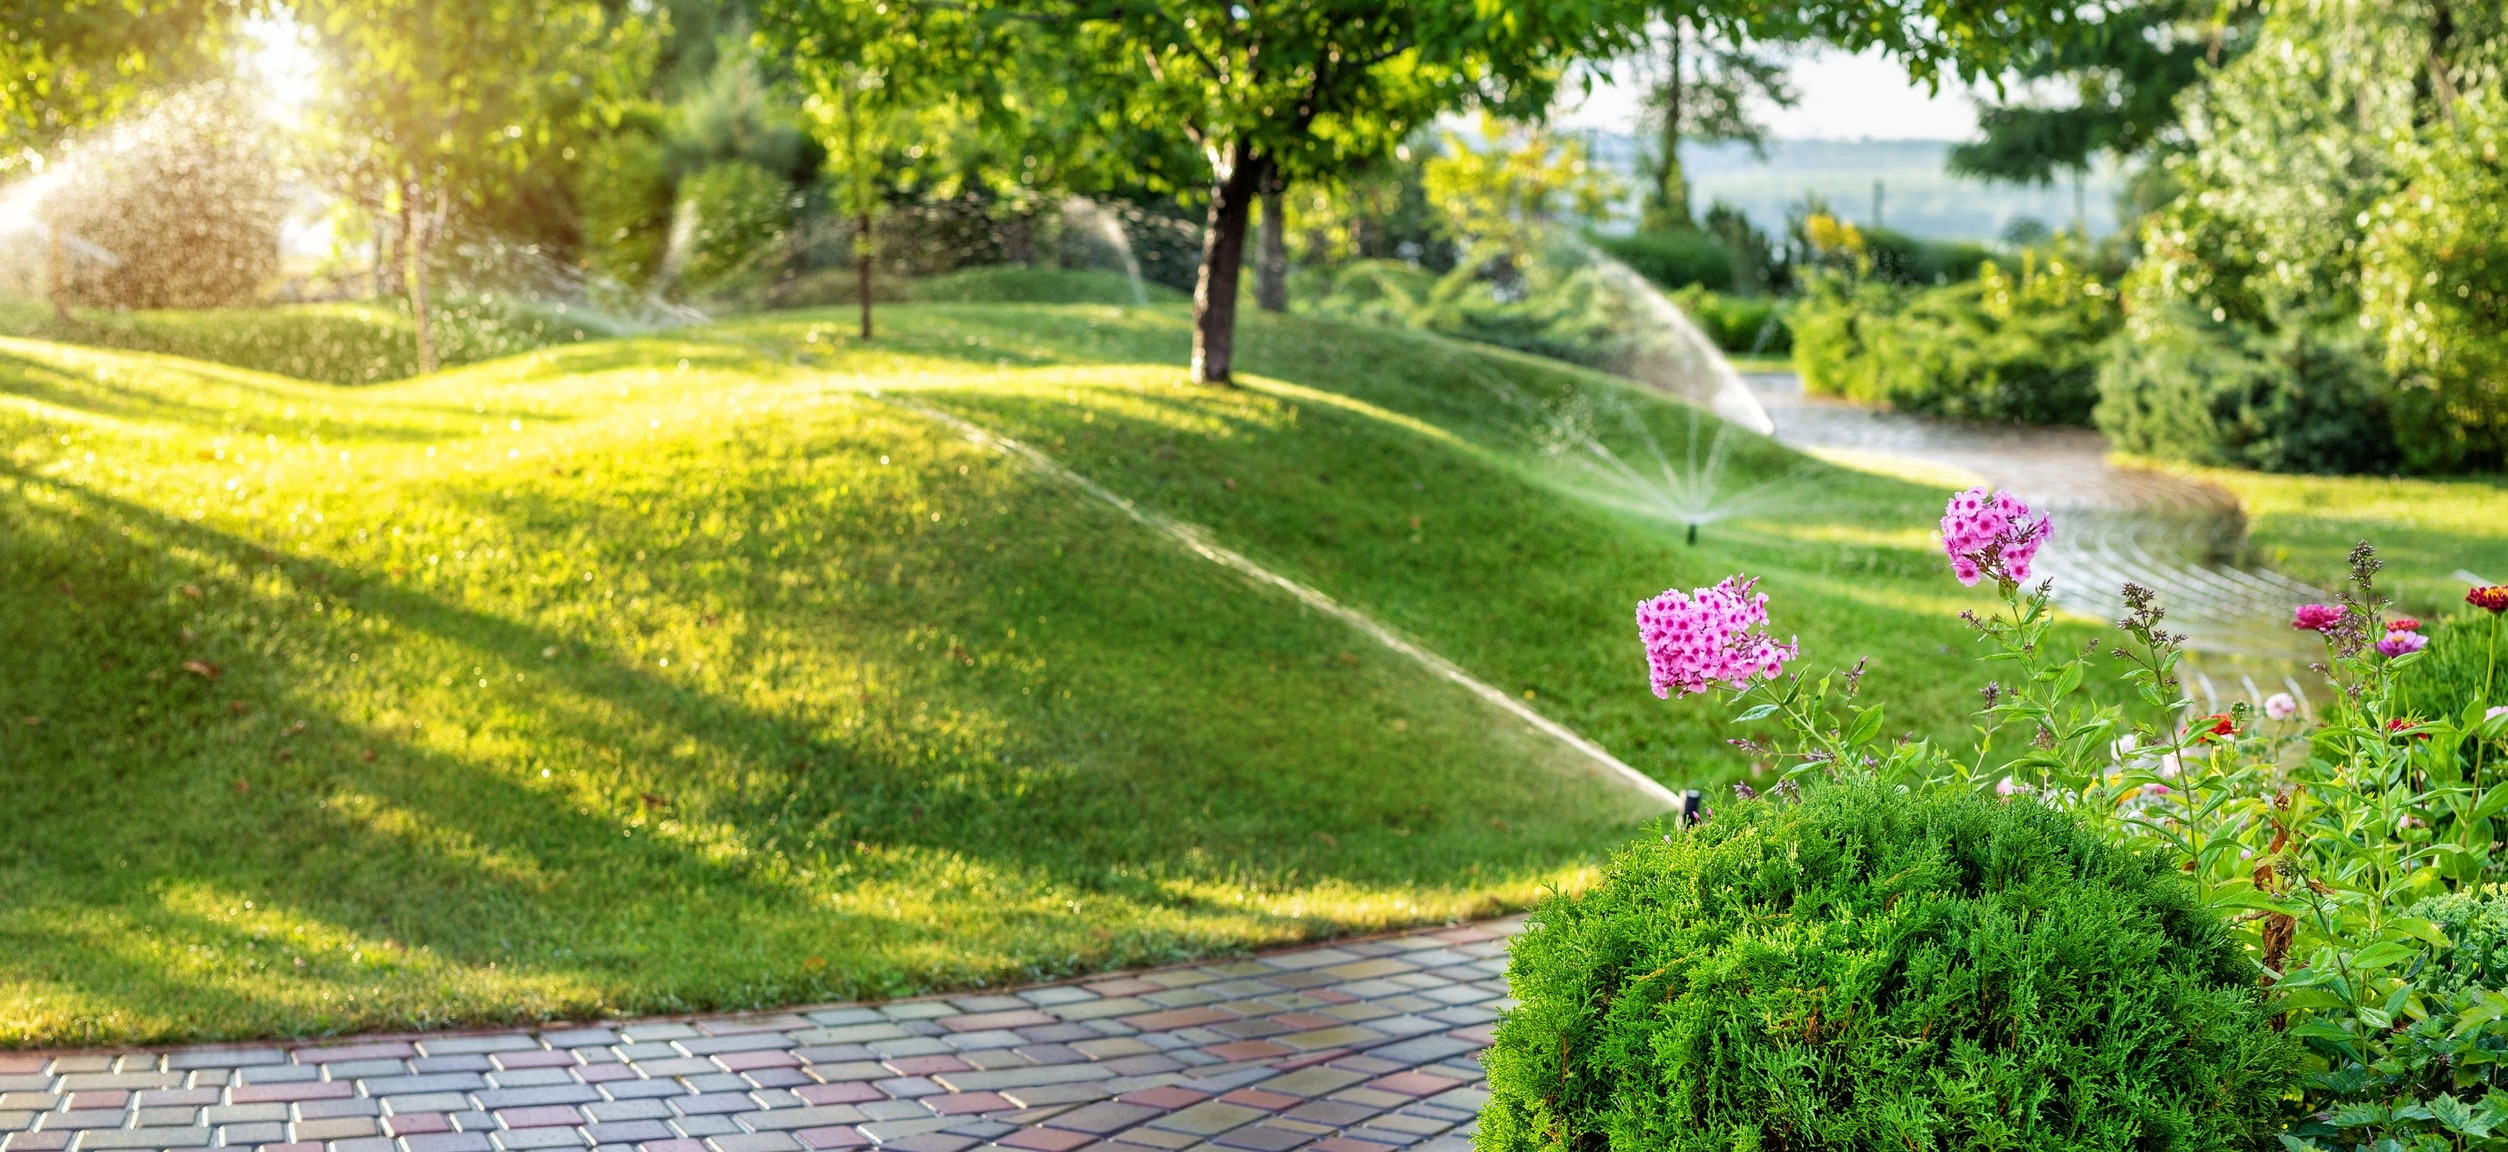 Landscape and automatic sprinkler system